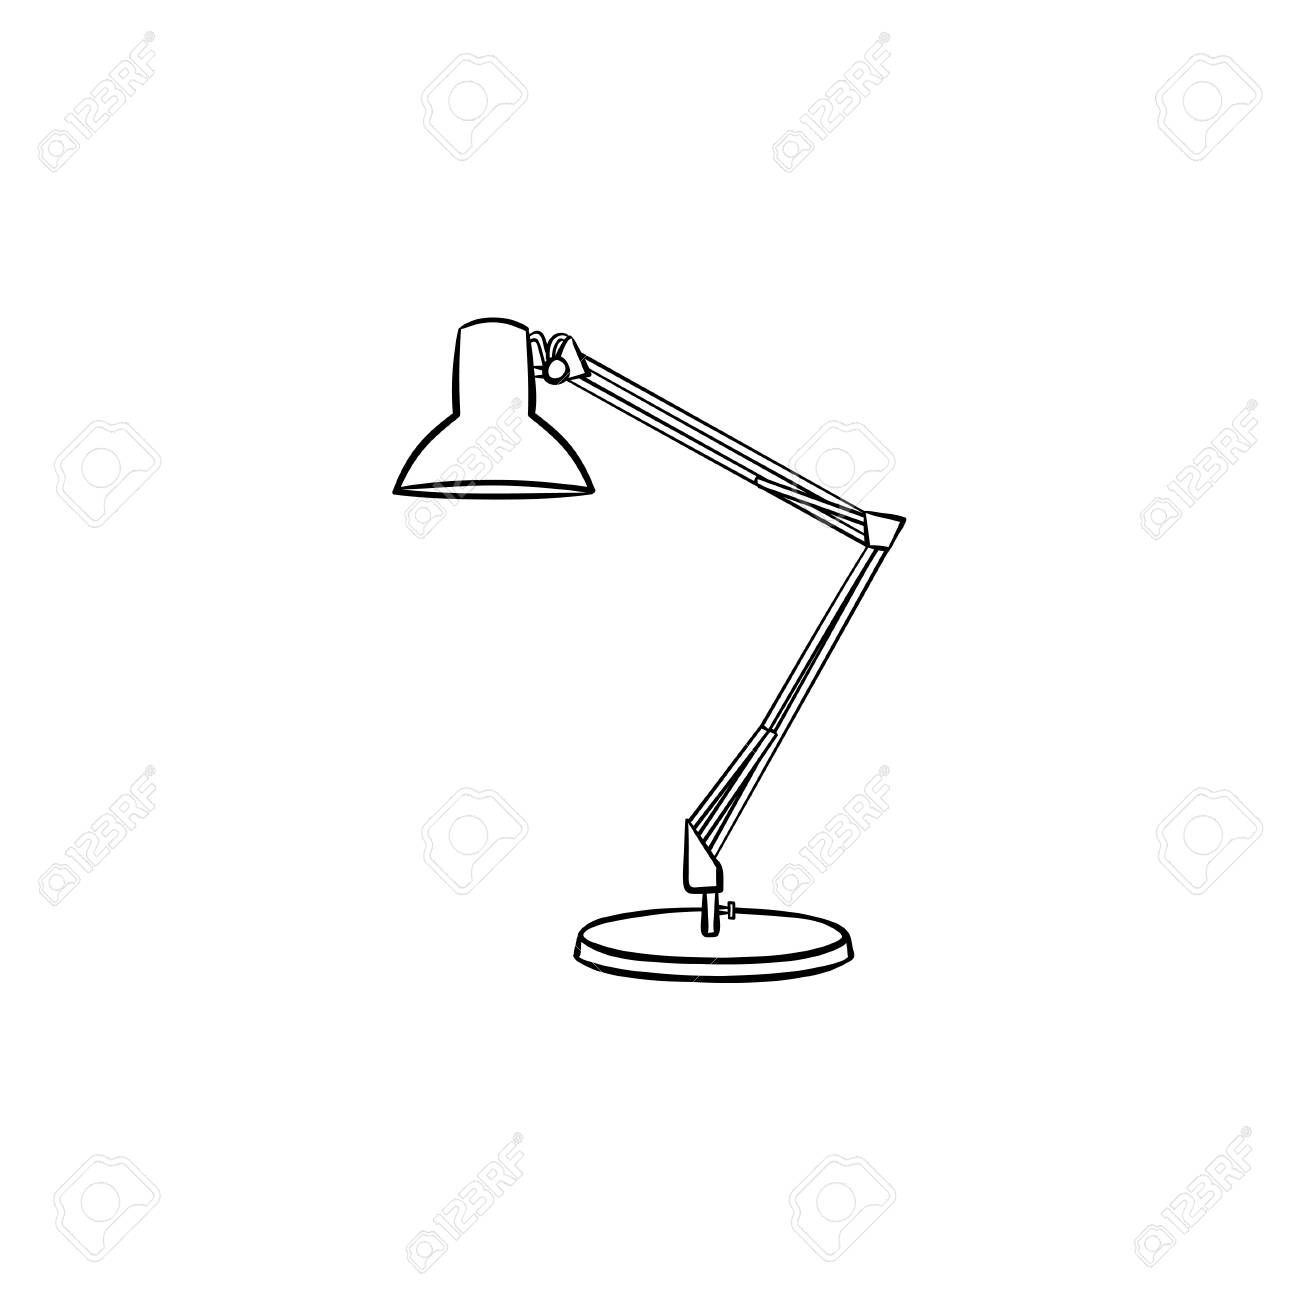 Table Lamp Hand Drawn Outline Doodle Icon Adjustable Desk Lamp